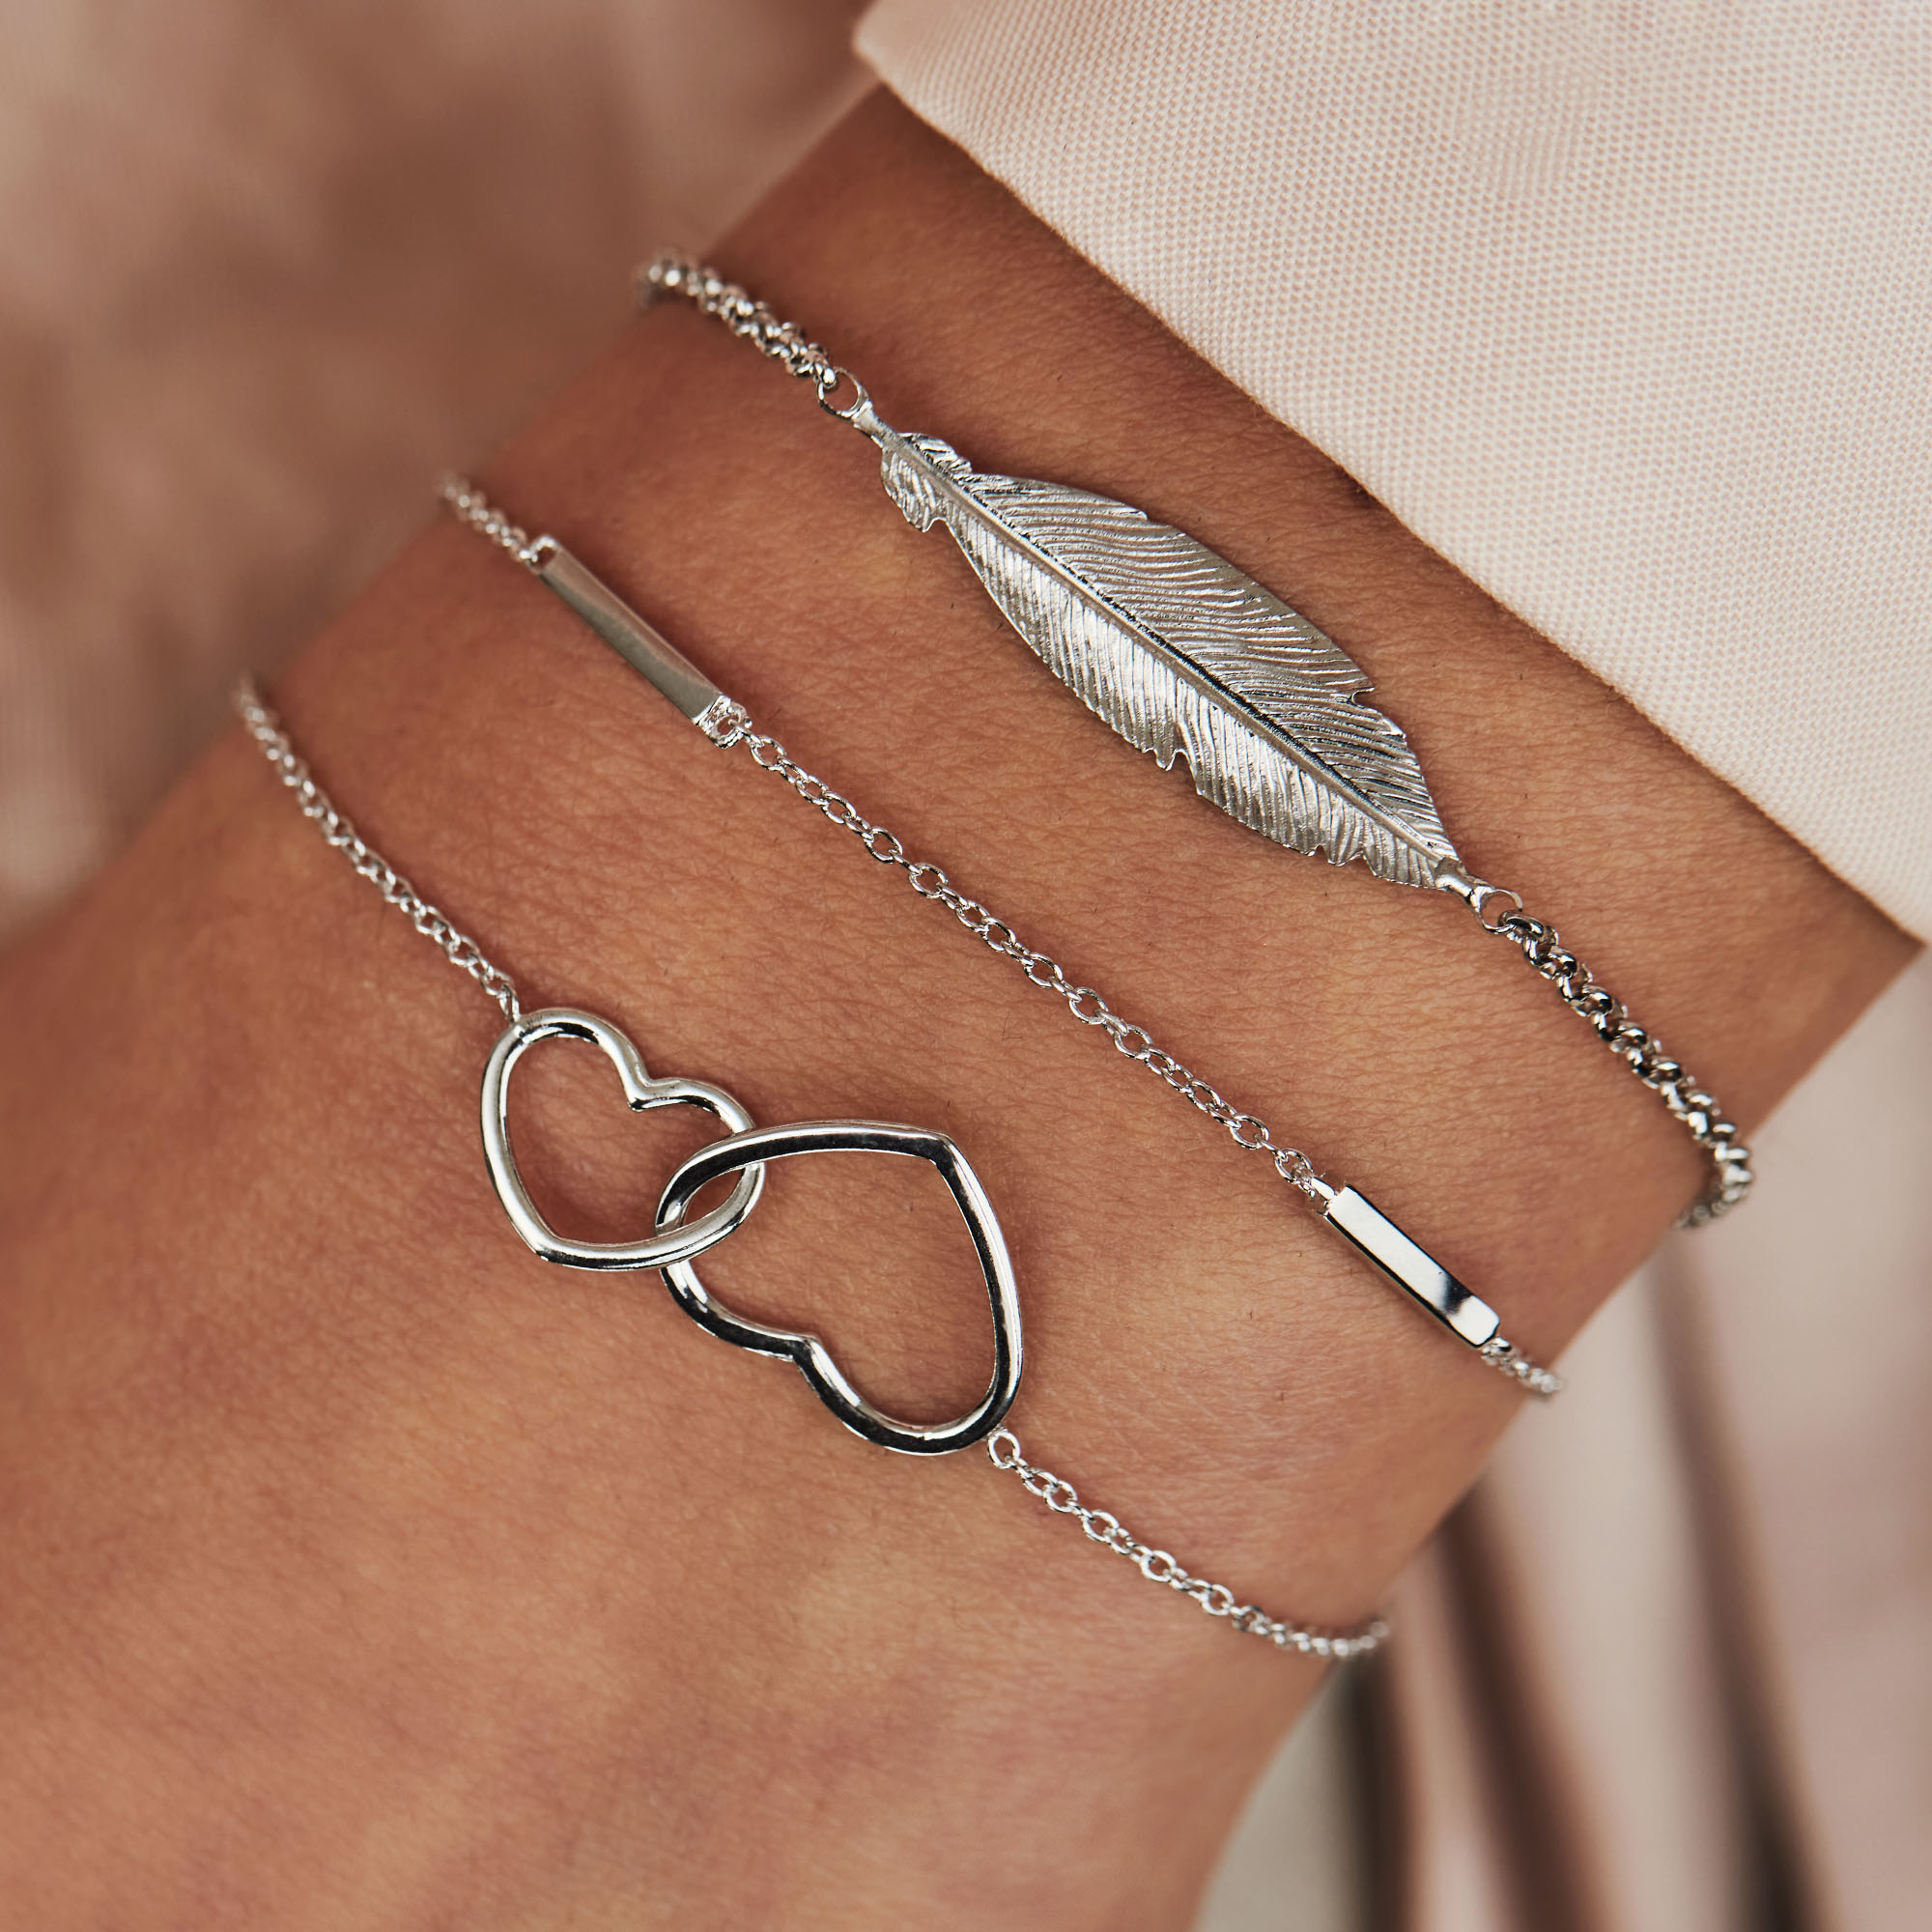 Selected Jewels Julie Lucie 925 sterling silver bracelet with feather